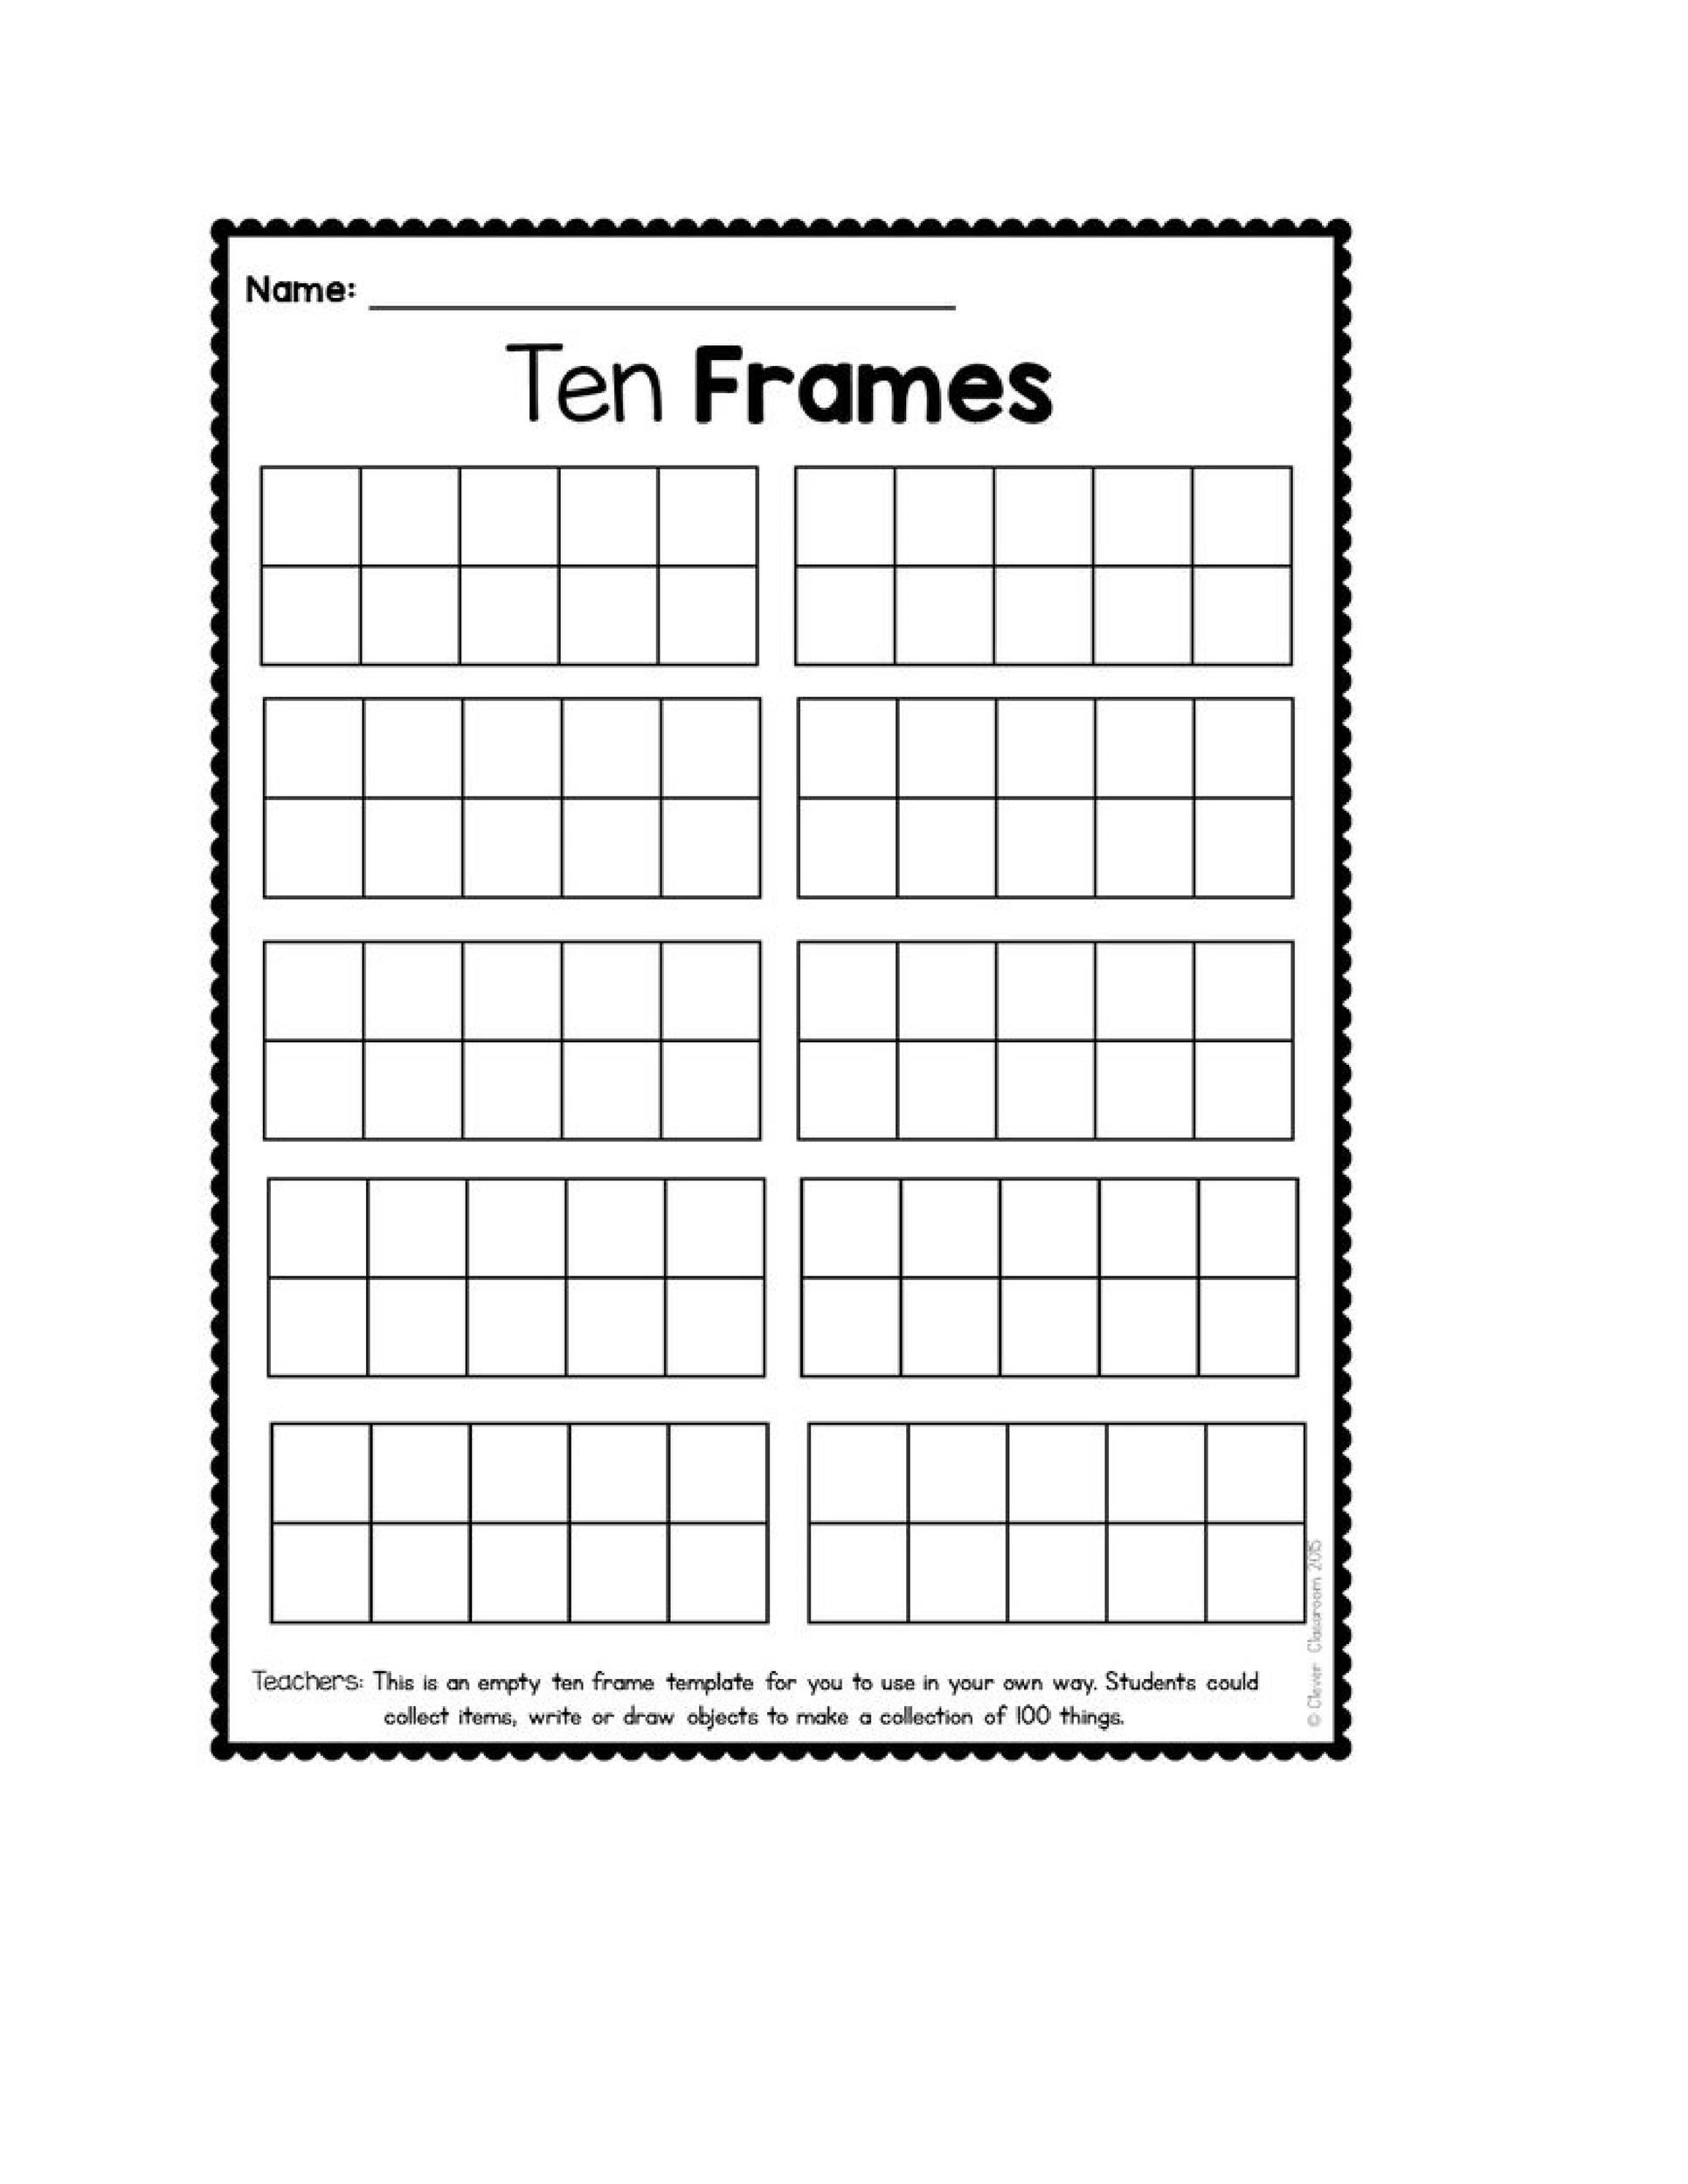 picture about Ten Frames Printable identified as 36 Printable 10 Body Templates (Totally free) ᐅ Template Lab